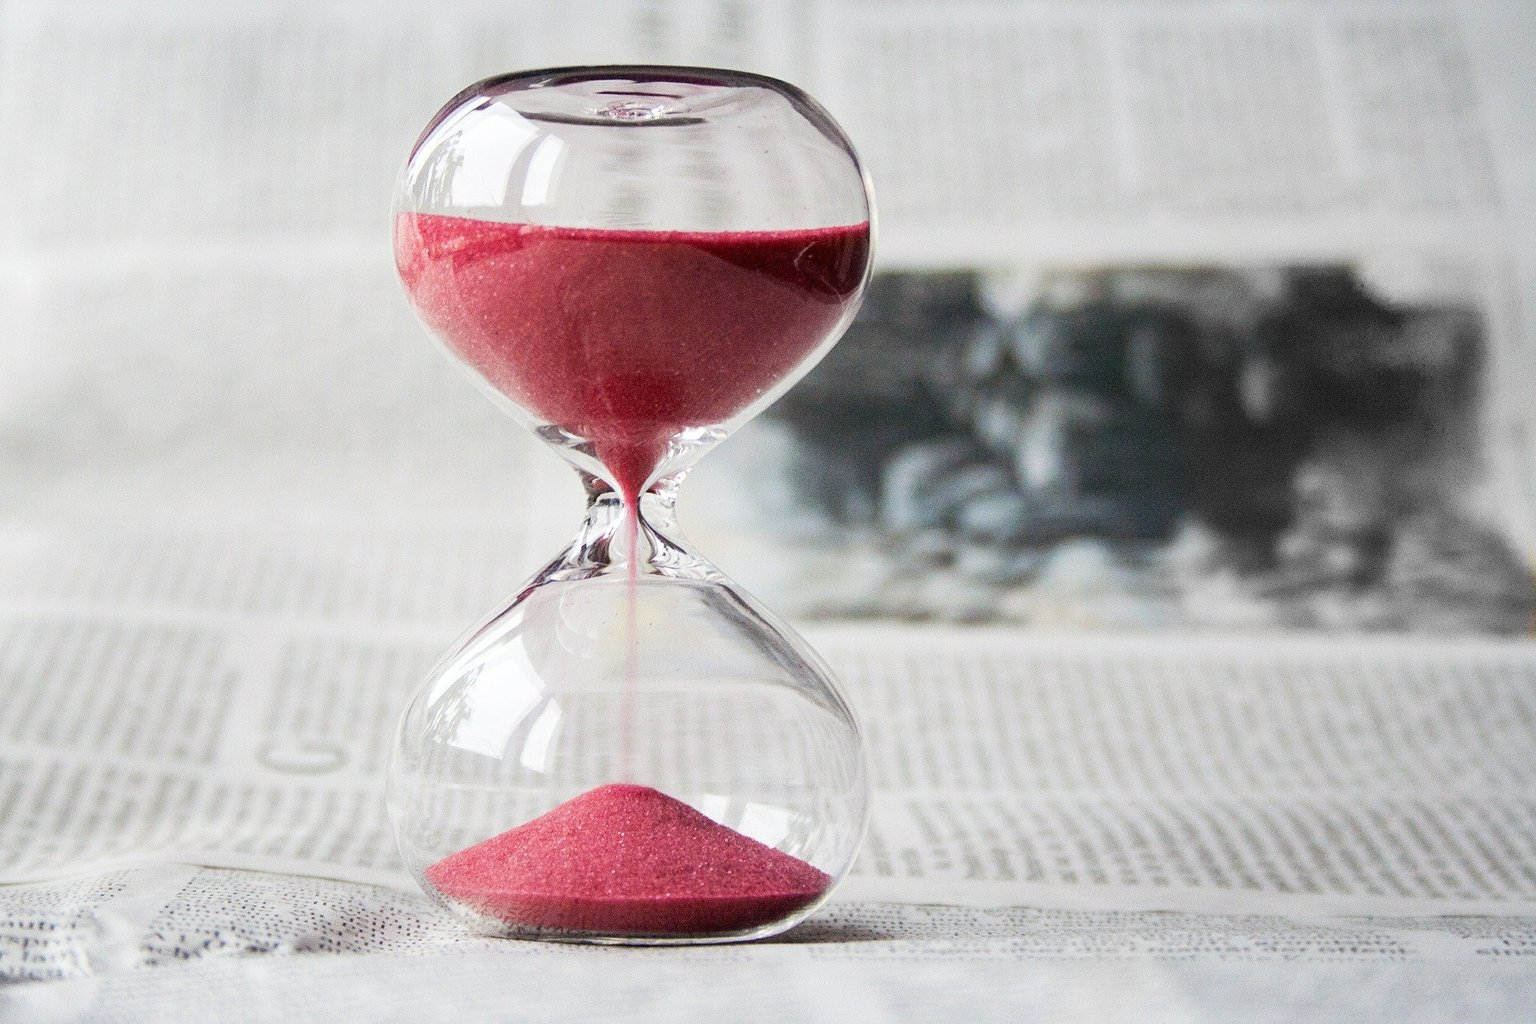 MBA Application Timing: Tick, Tock…What Do I Do?